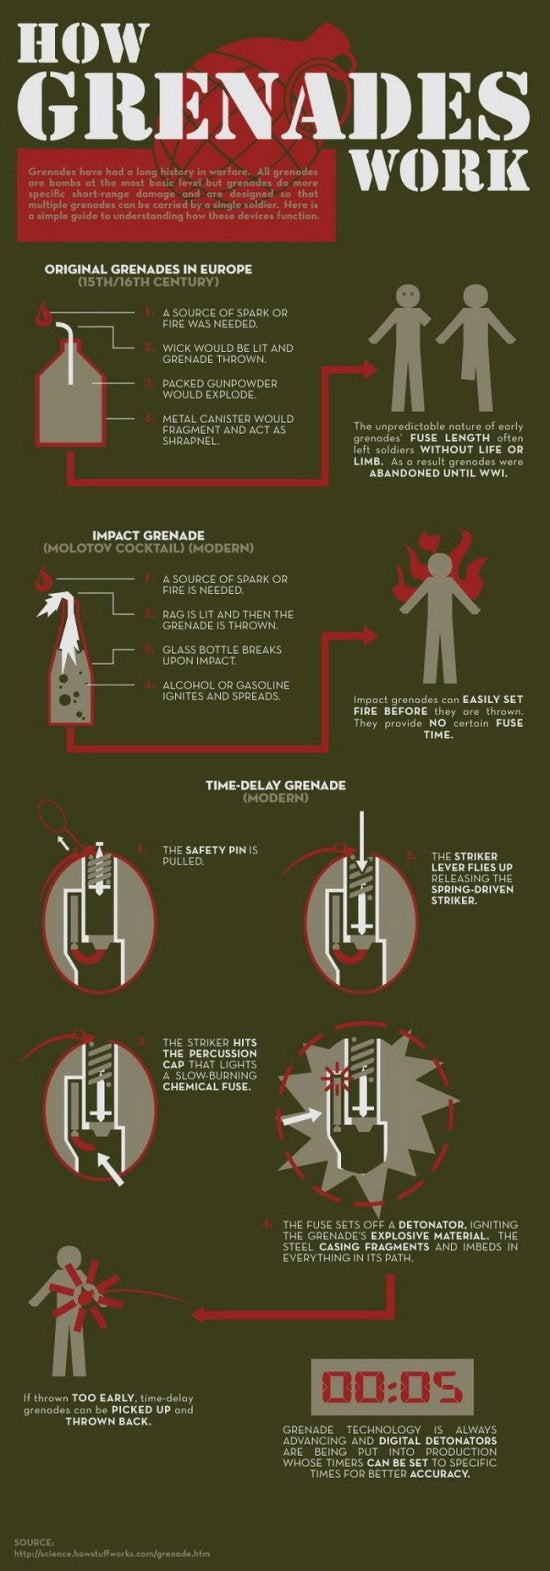 How Grenades Work